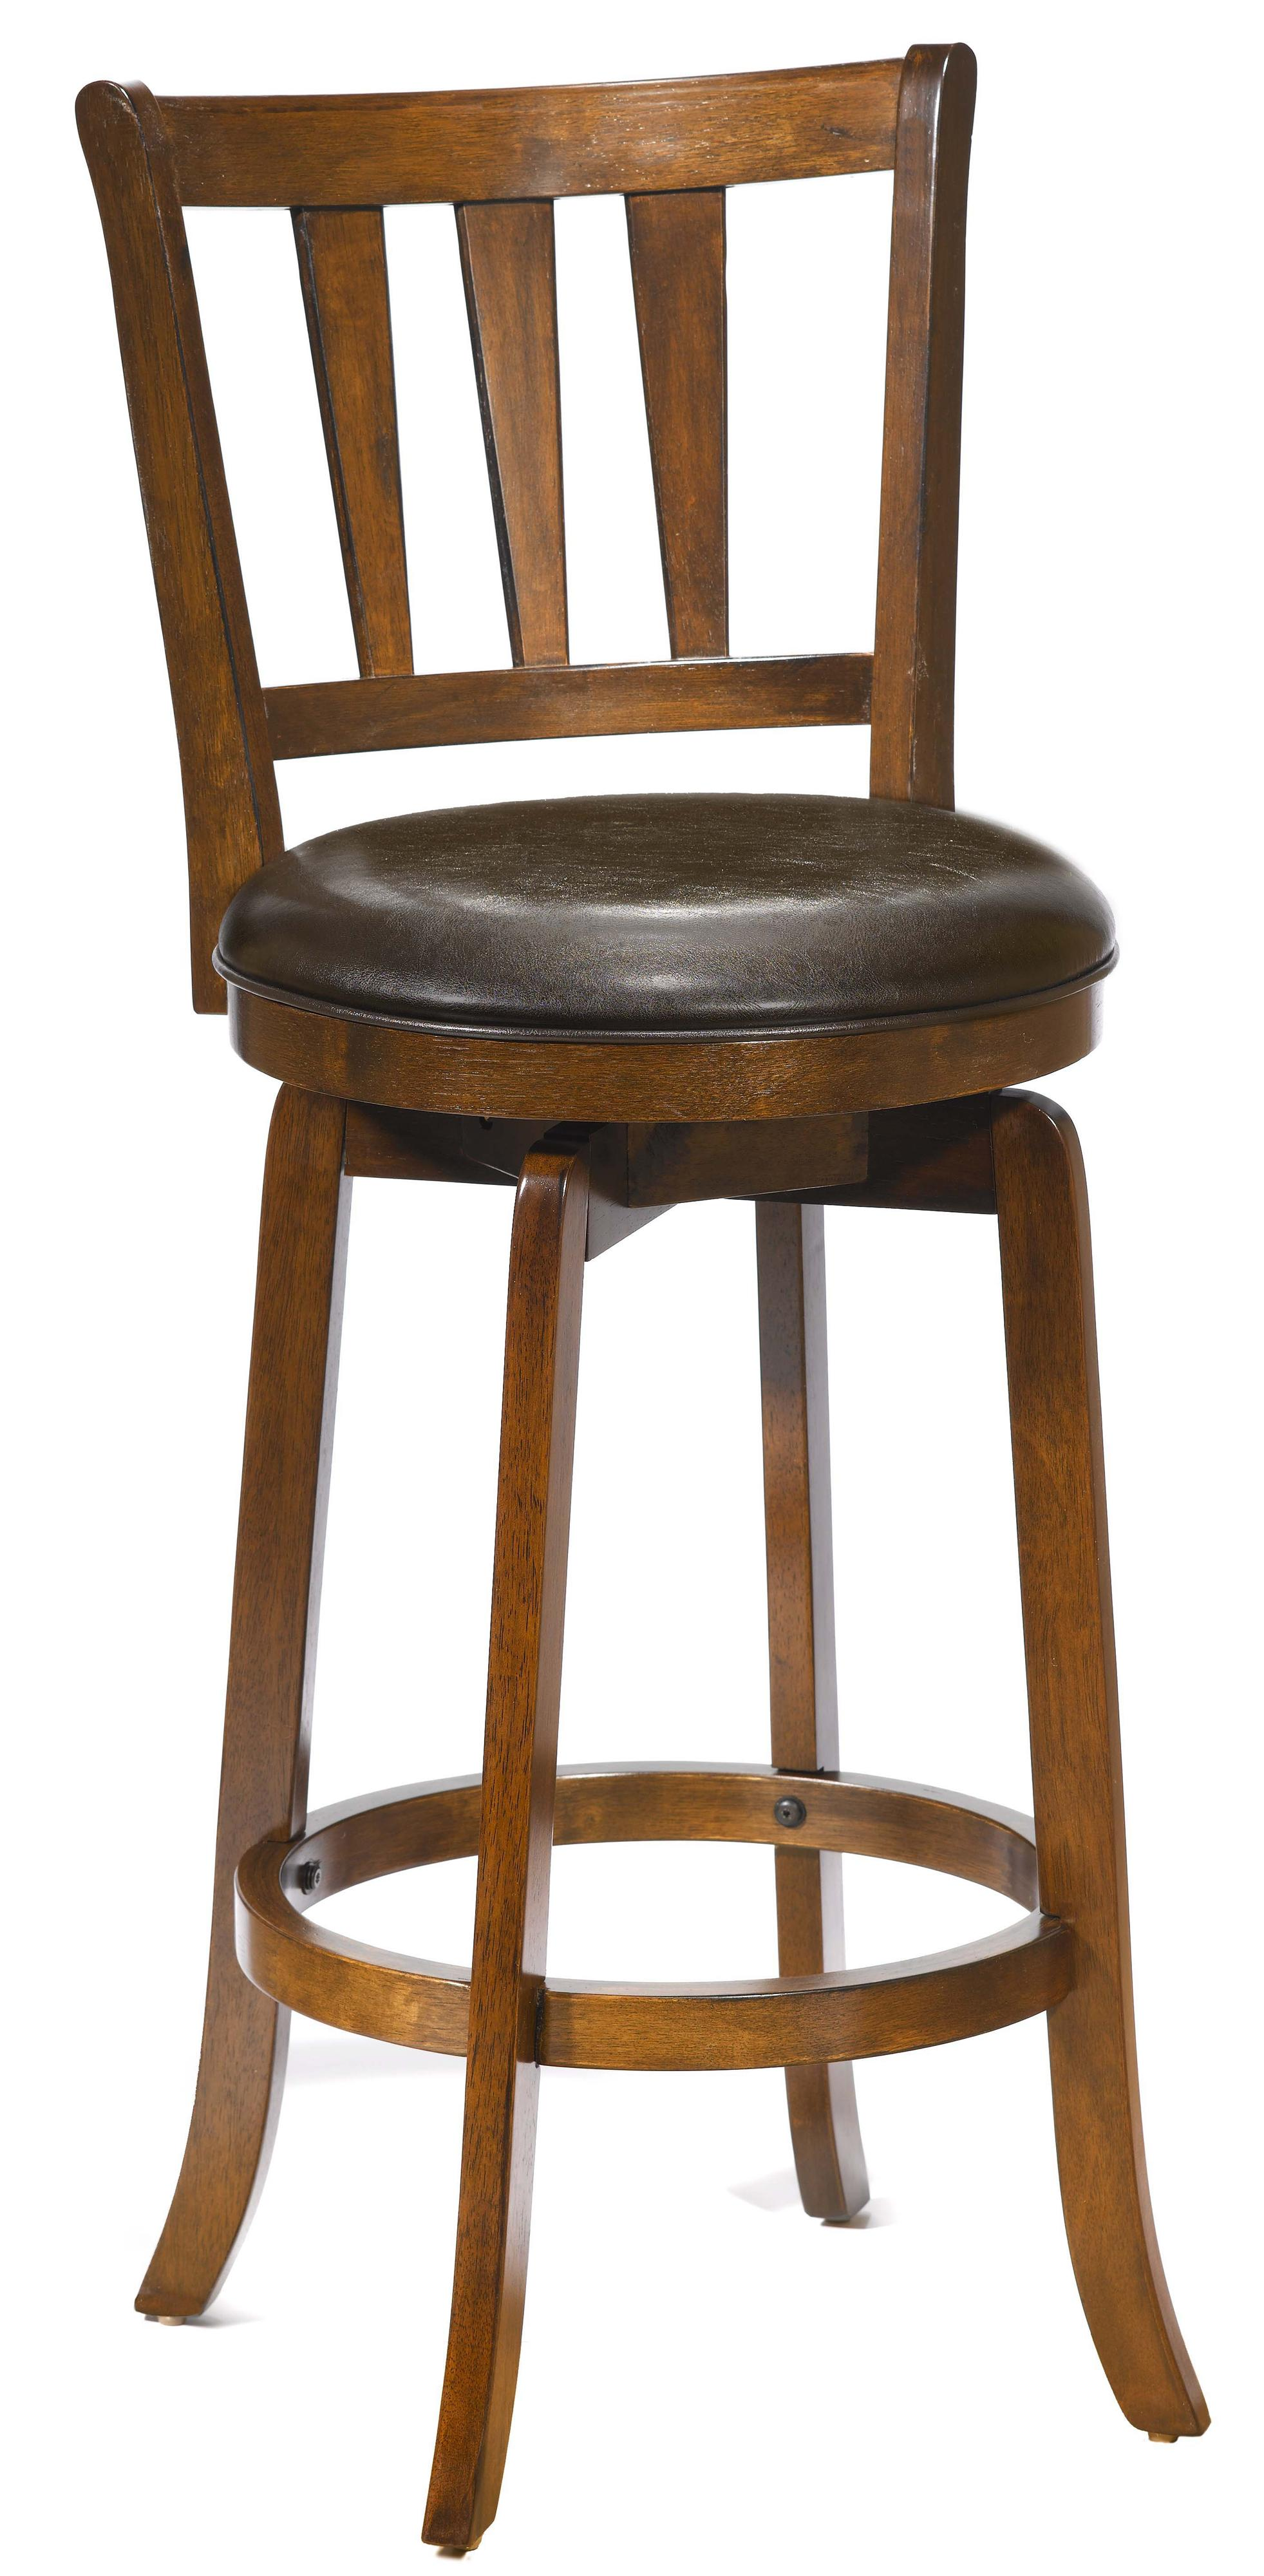 26 counter height presque isle swivel bar stool by hillsdale wolf and gardiner wolf furniture. Black Bedroom Furniture Sets. Home Design Ideas